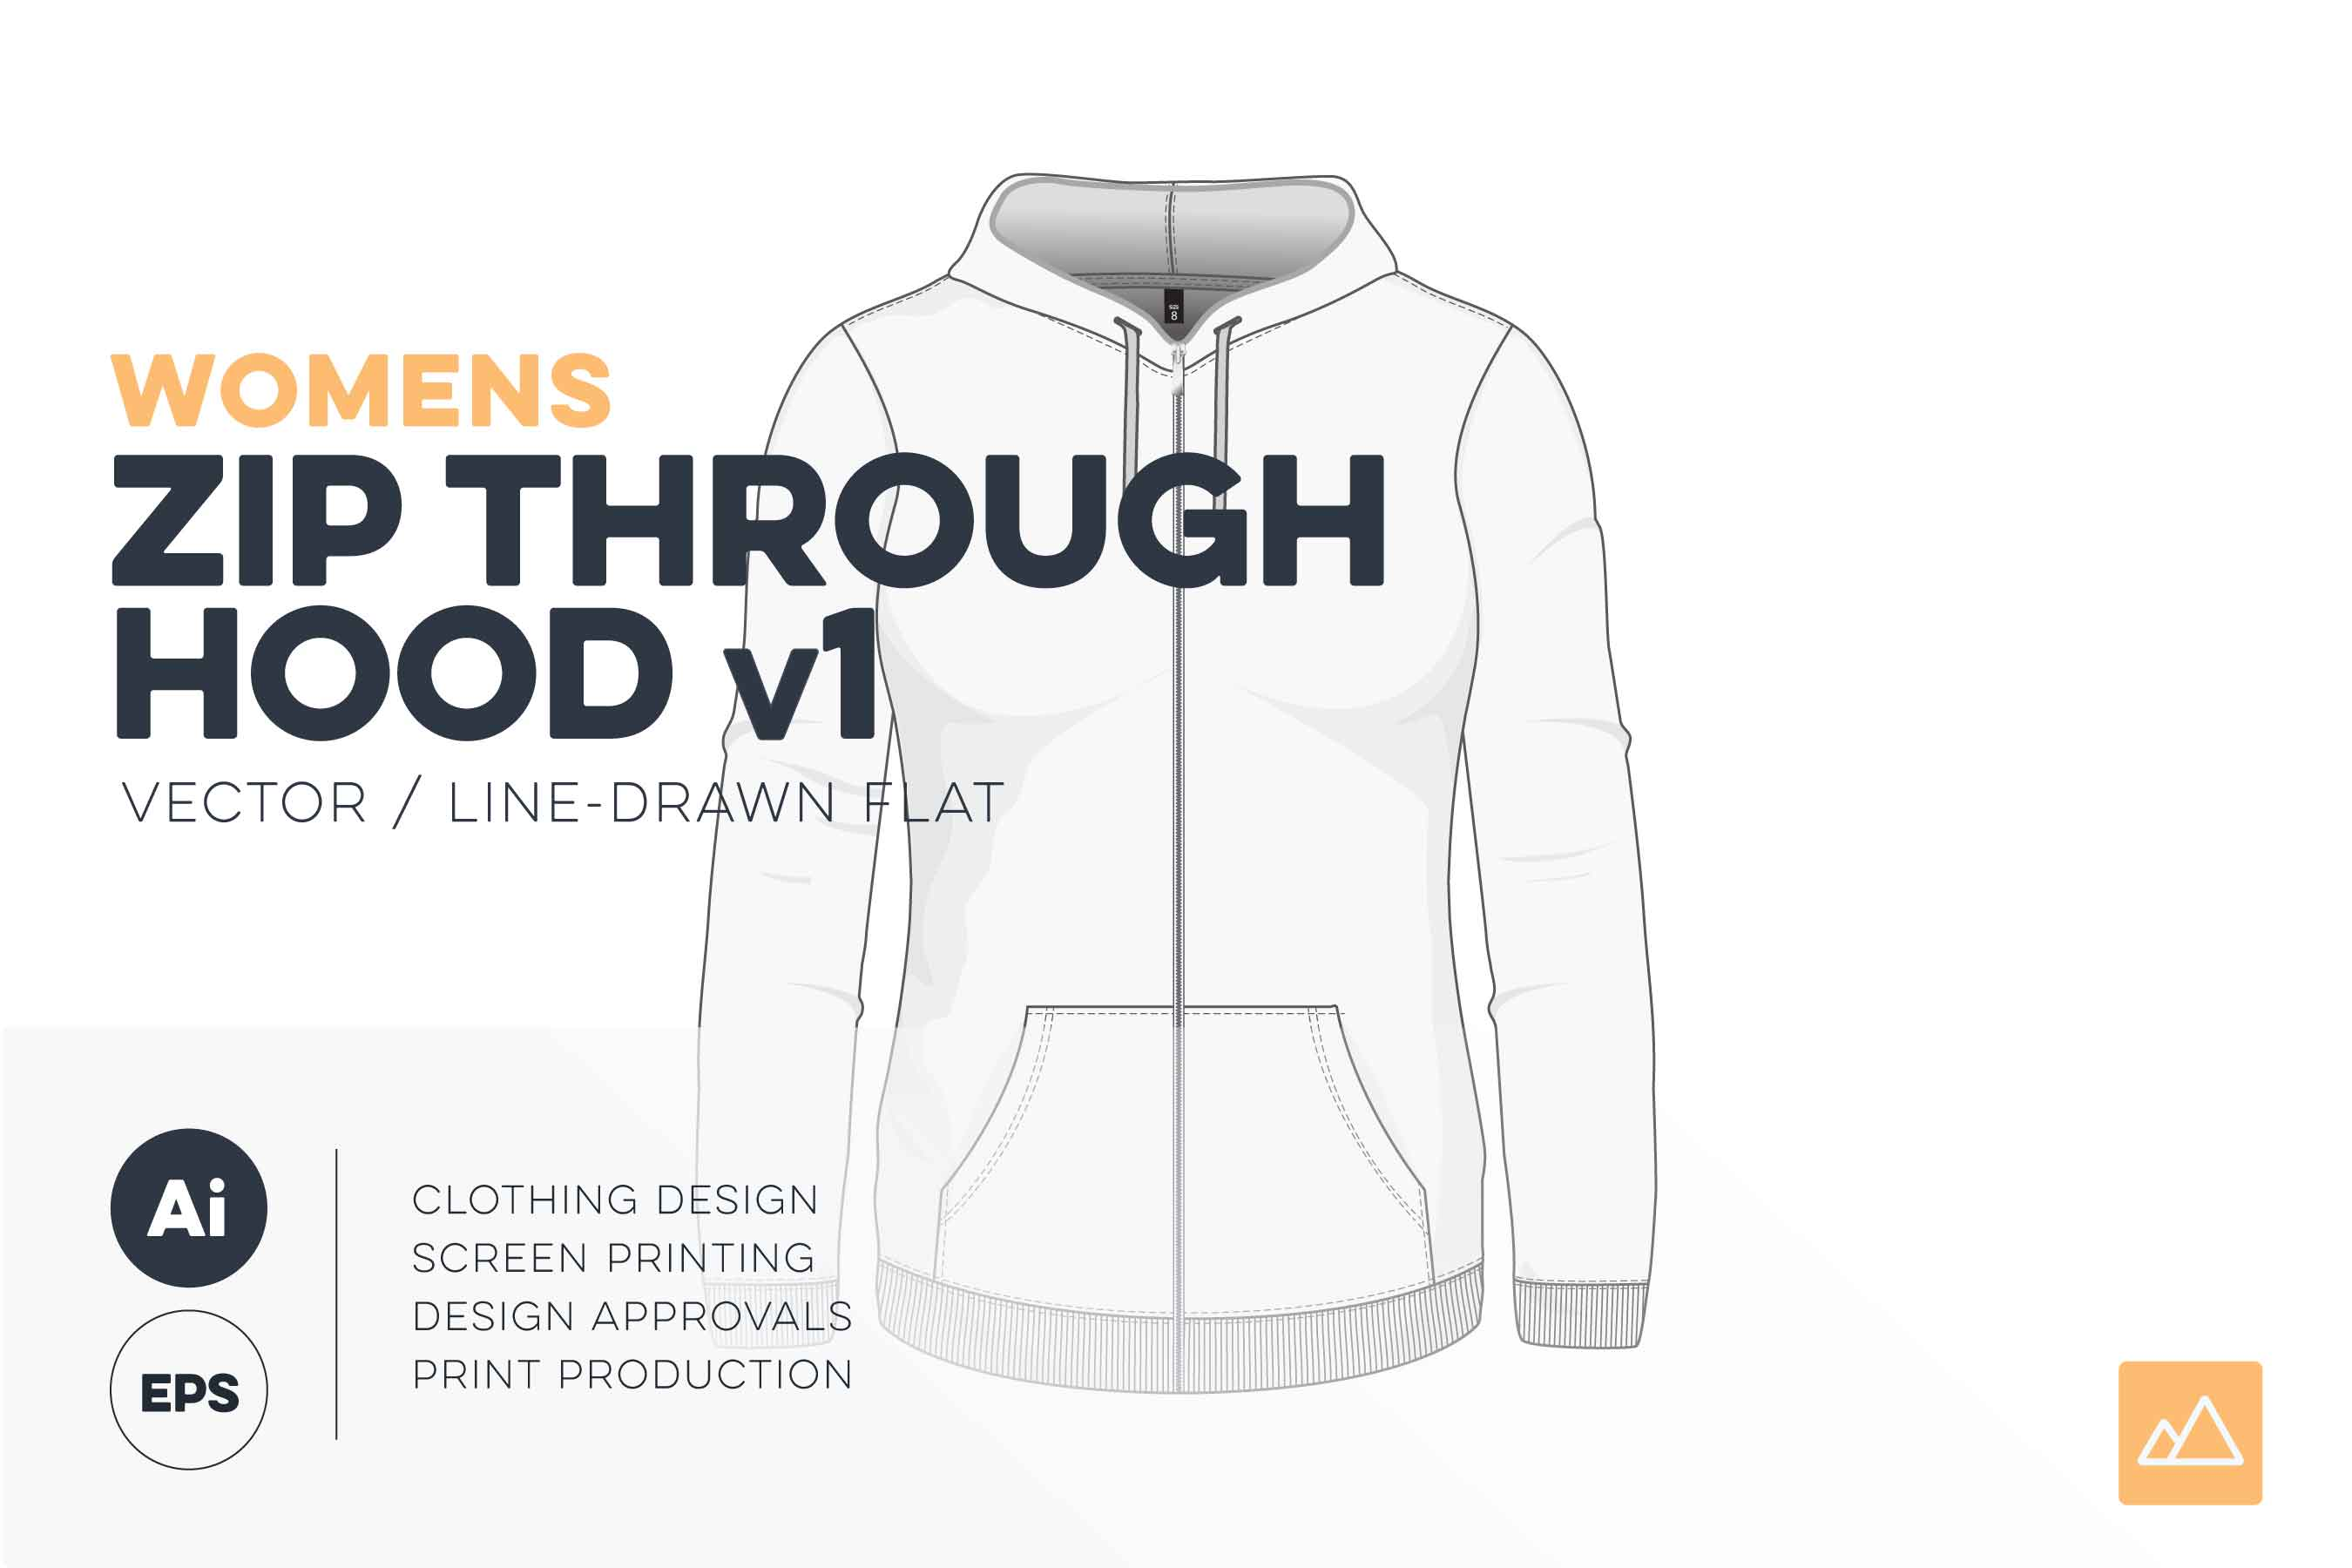 Womens zip through hoodie template vector pack HERO